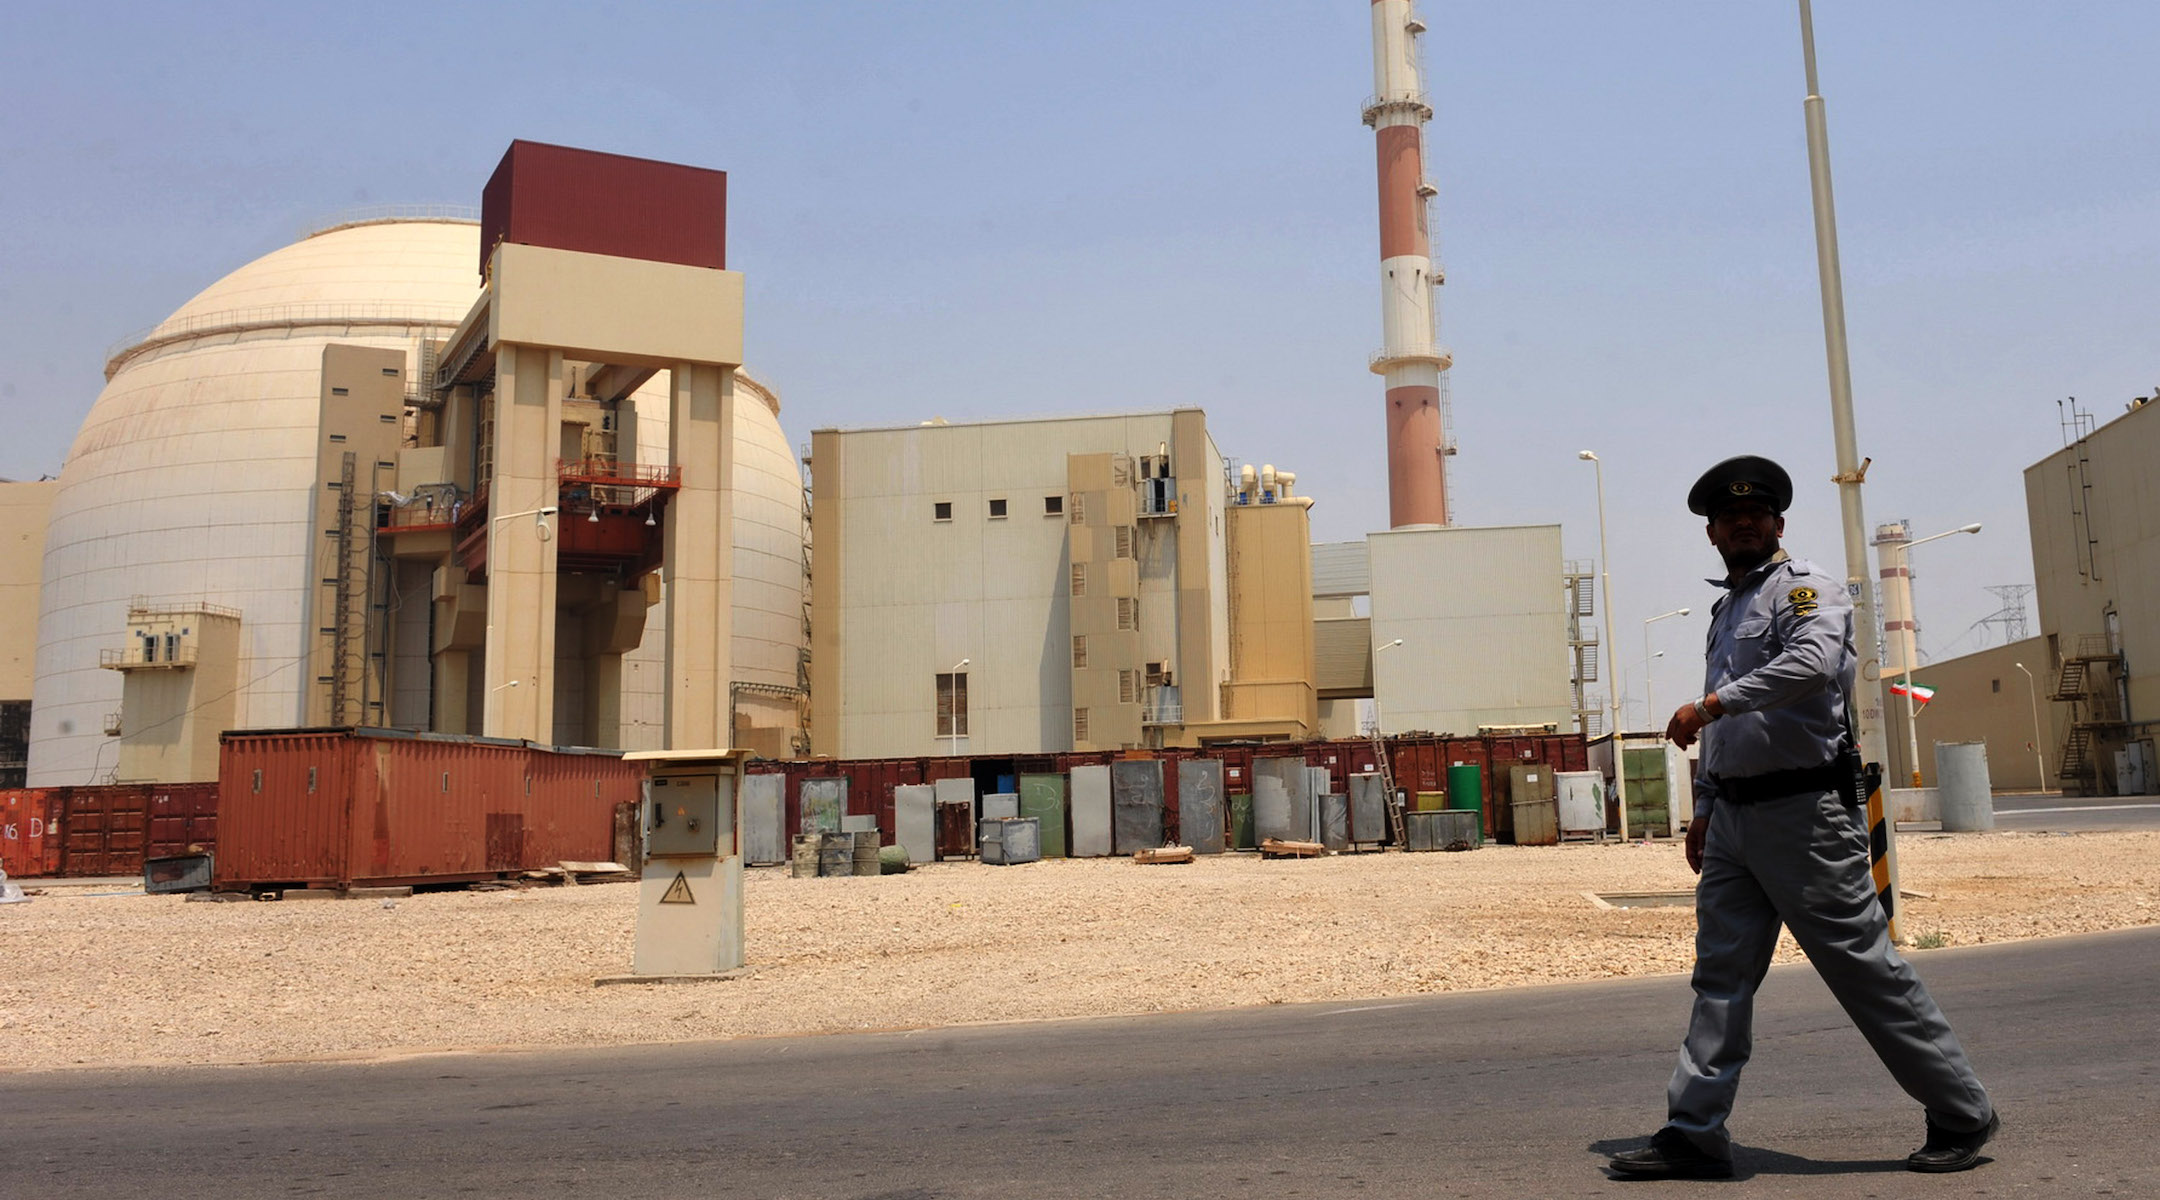 A soldier walks around outside a large dusty industrial facility